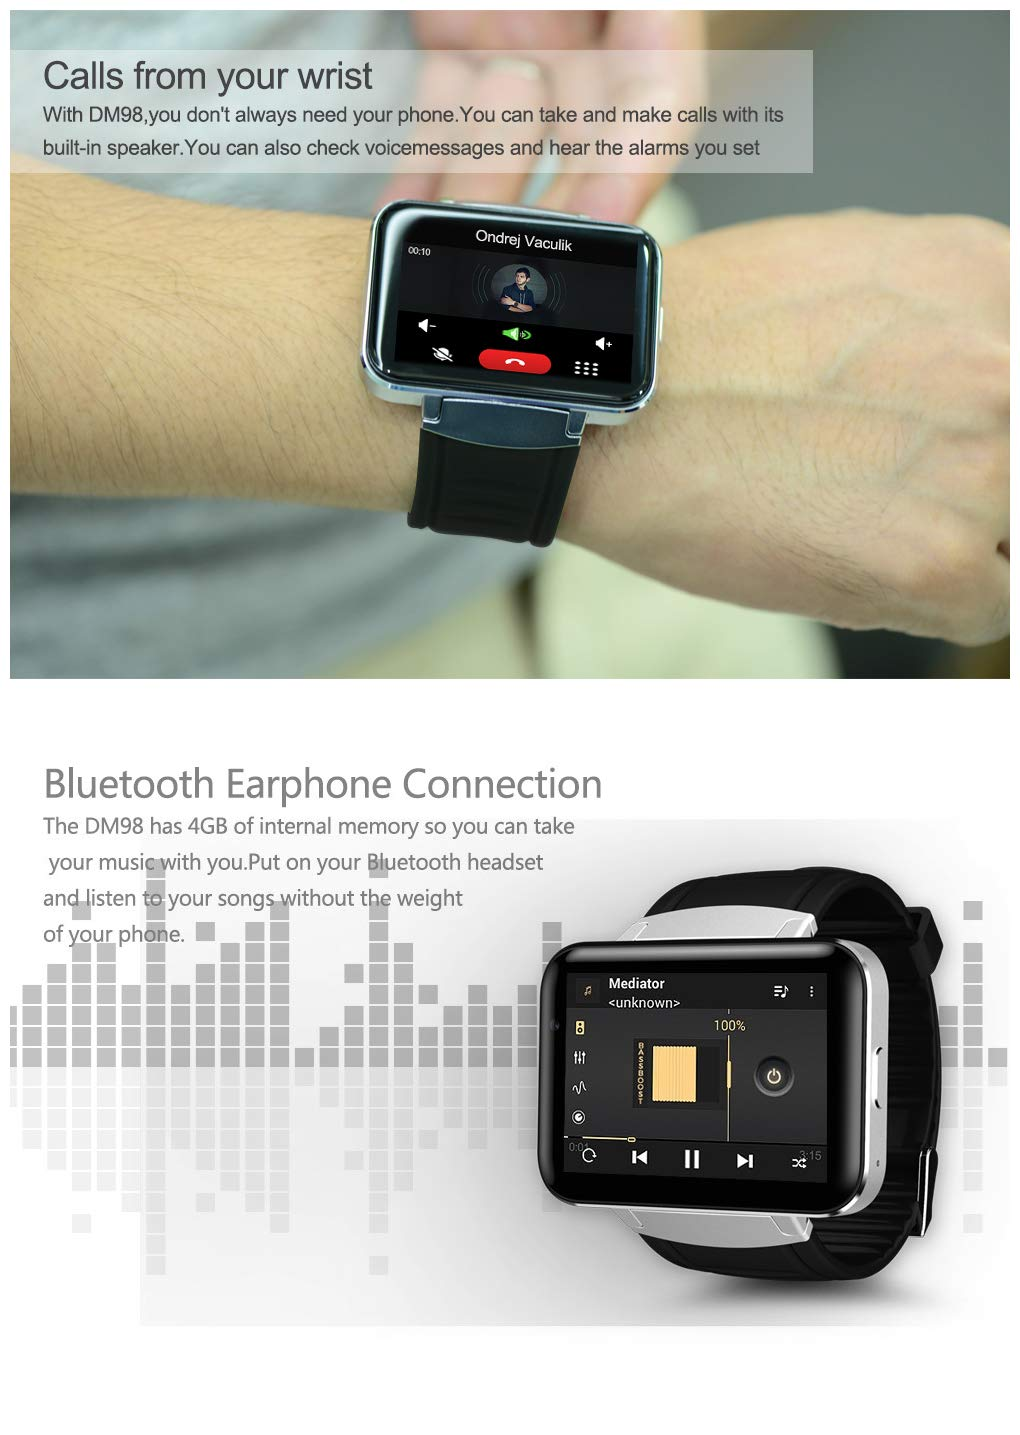 Amazon.com: DM98 Smart Watch 2.2 inch Android OS 3G ...